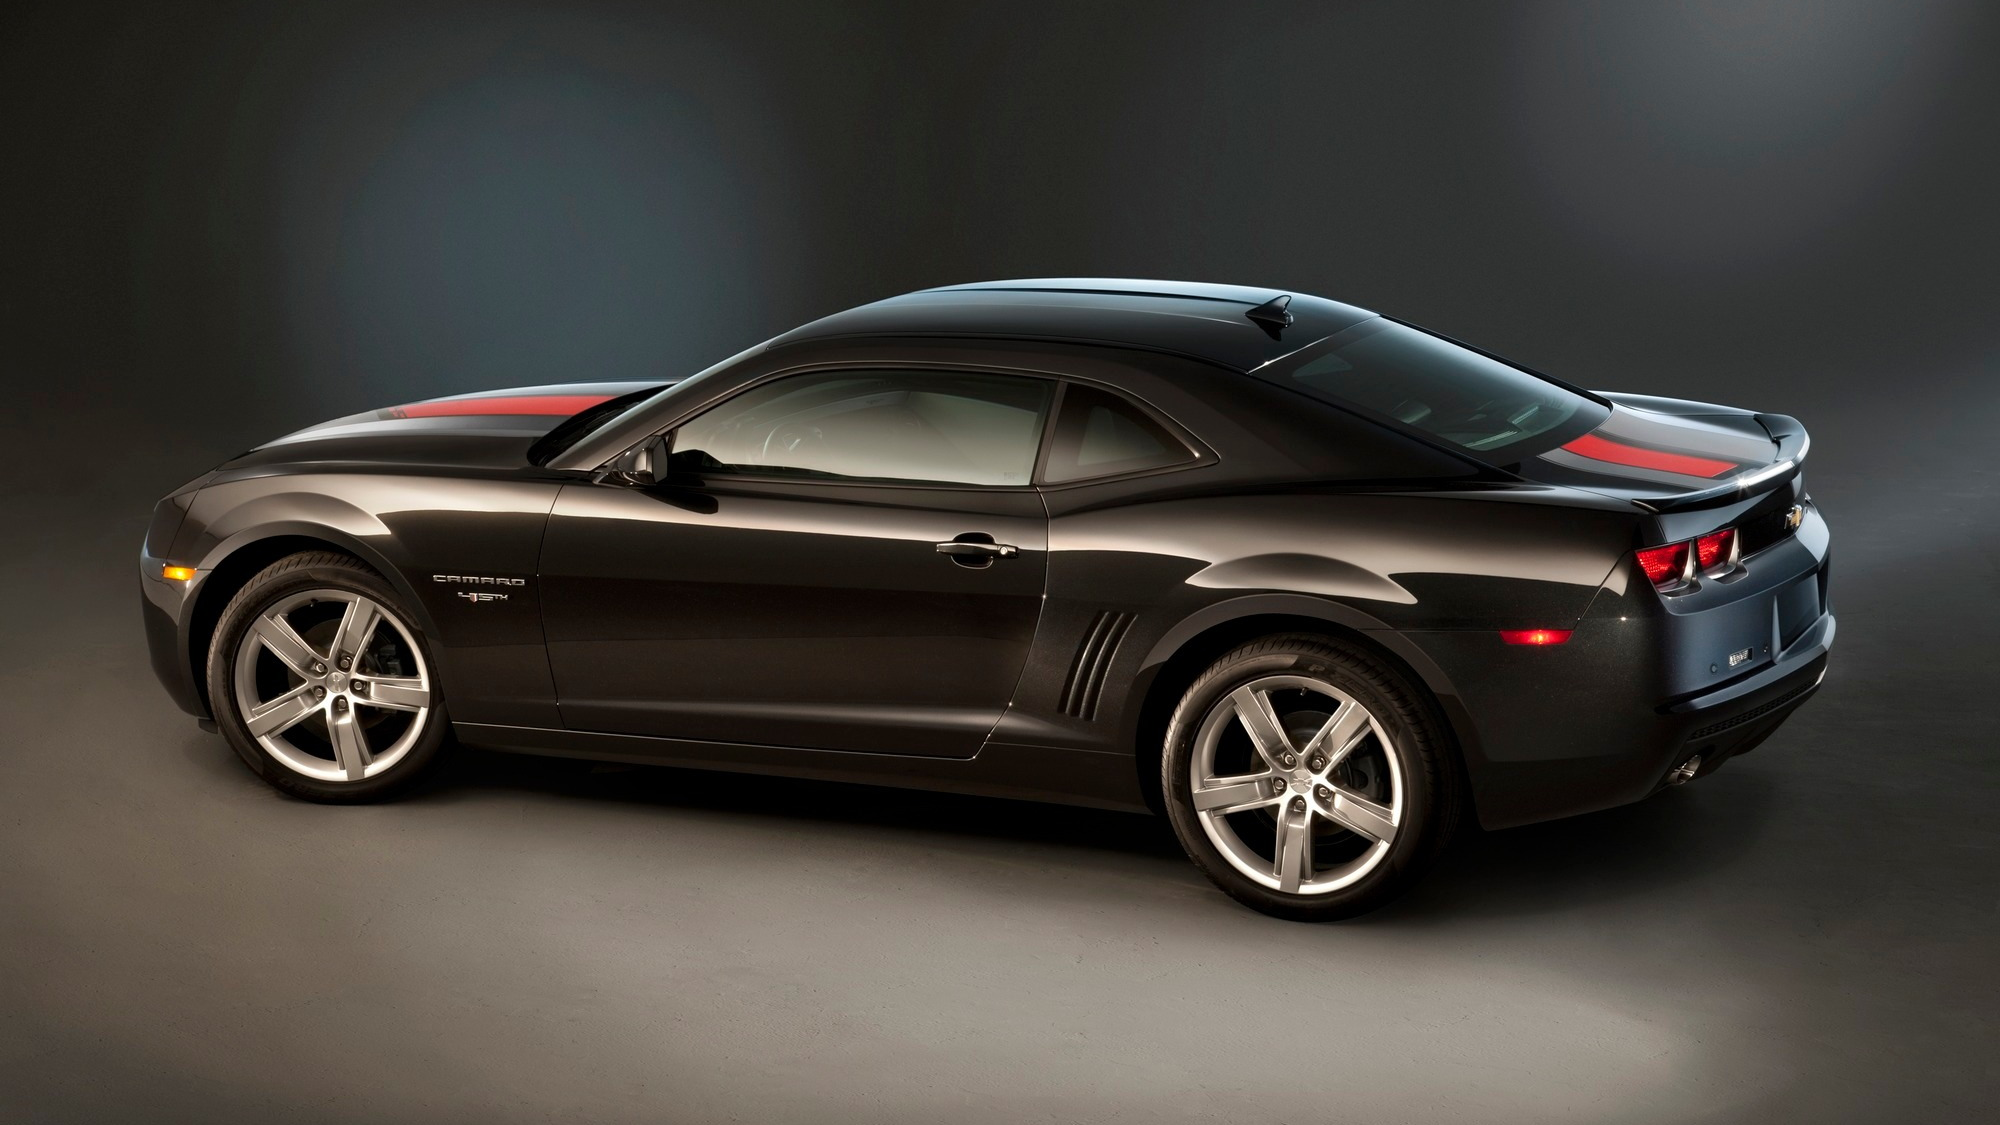 45th Anniversary Edition 2012 Chevrolet Camaro